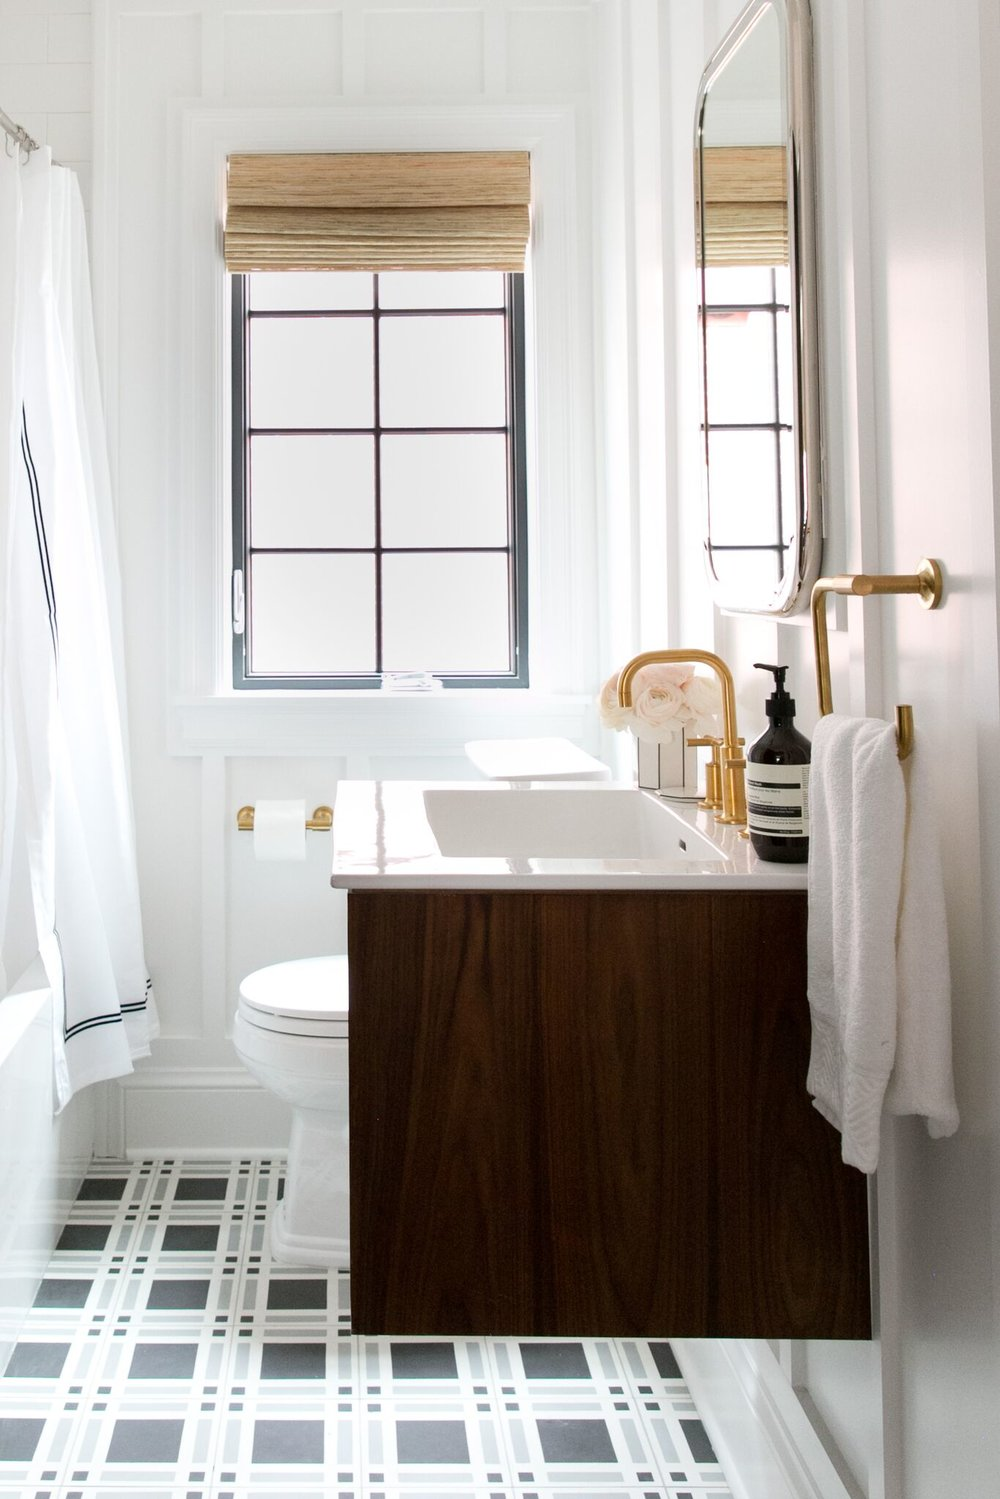 Modern+bathroom+with+patterned+title,+and+floating+vanity.jpg